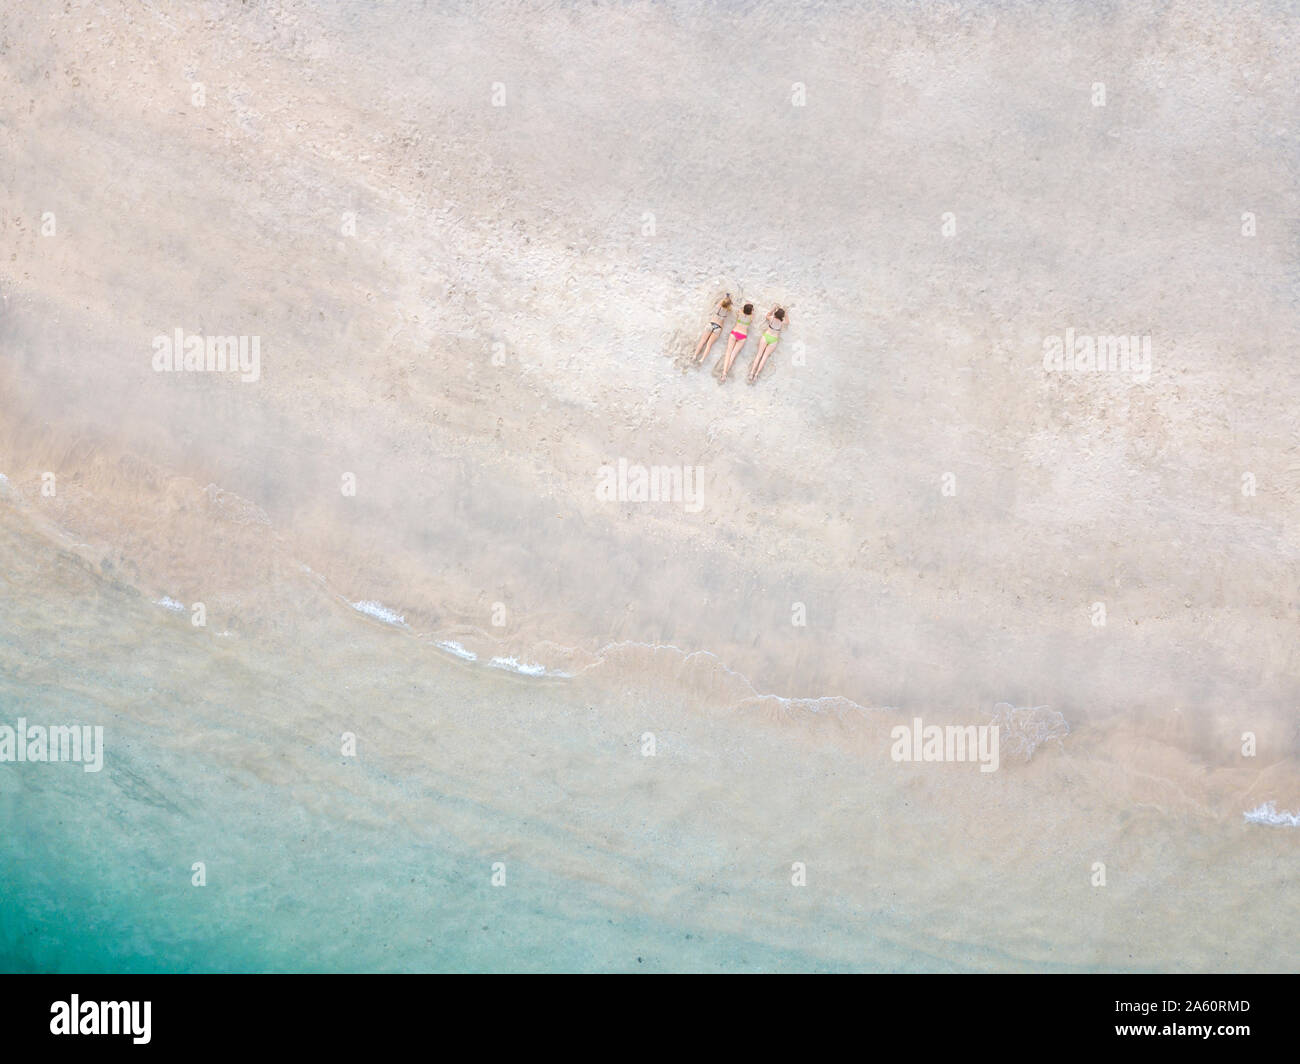 Aerial view of young women lying at the beach, Gili Air island, Bali, Indonesia Stock Photo